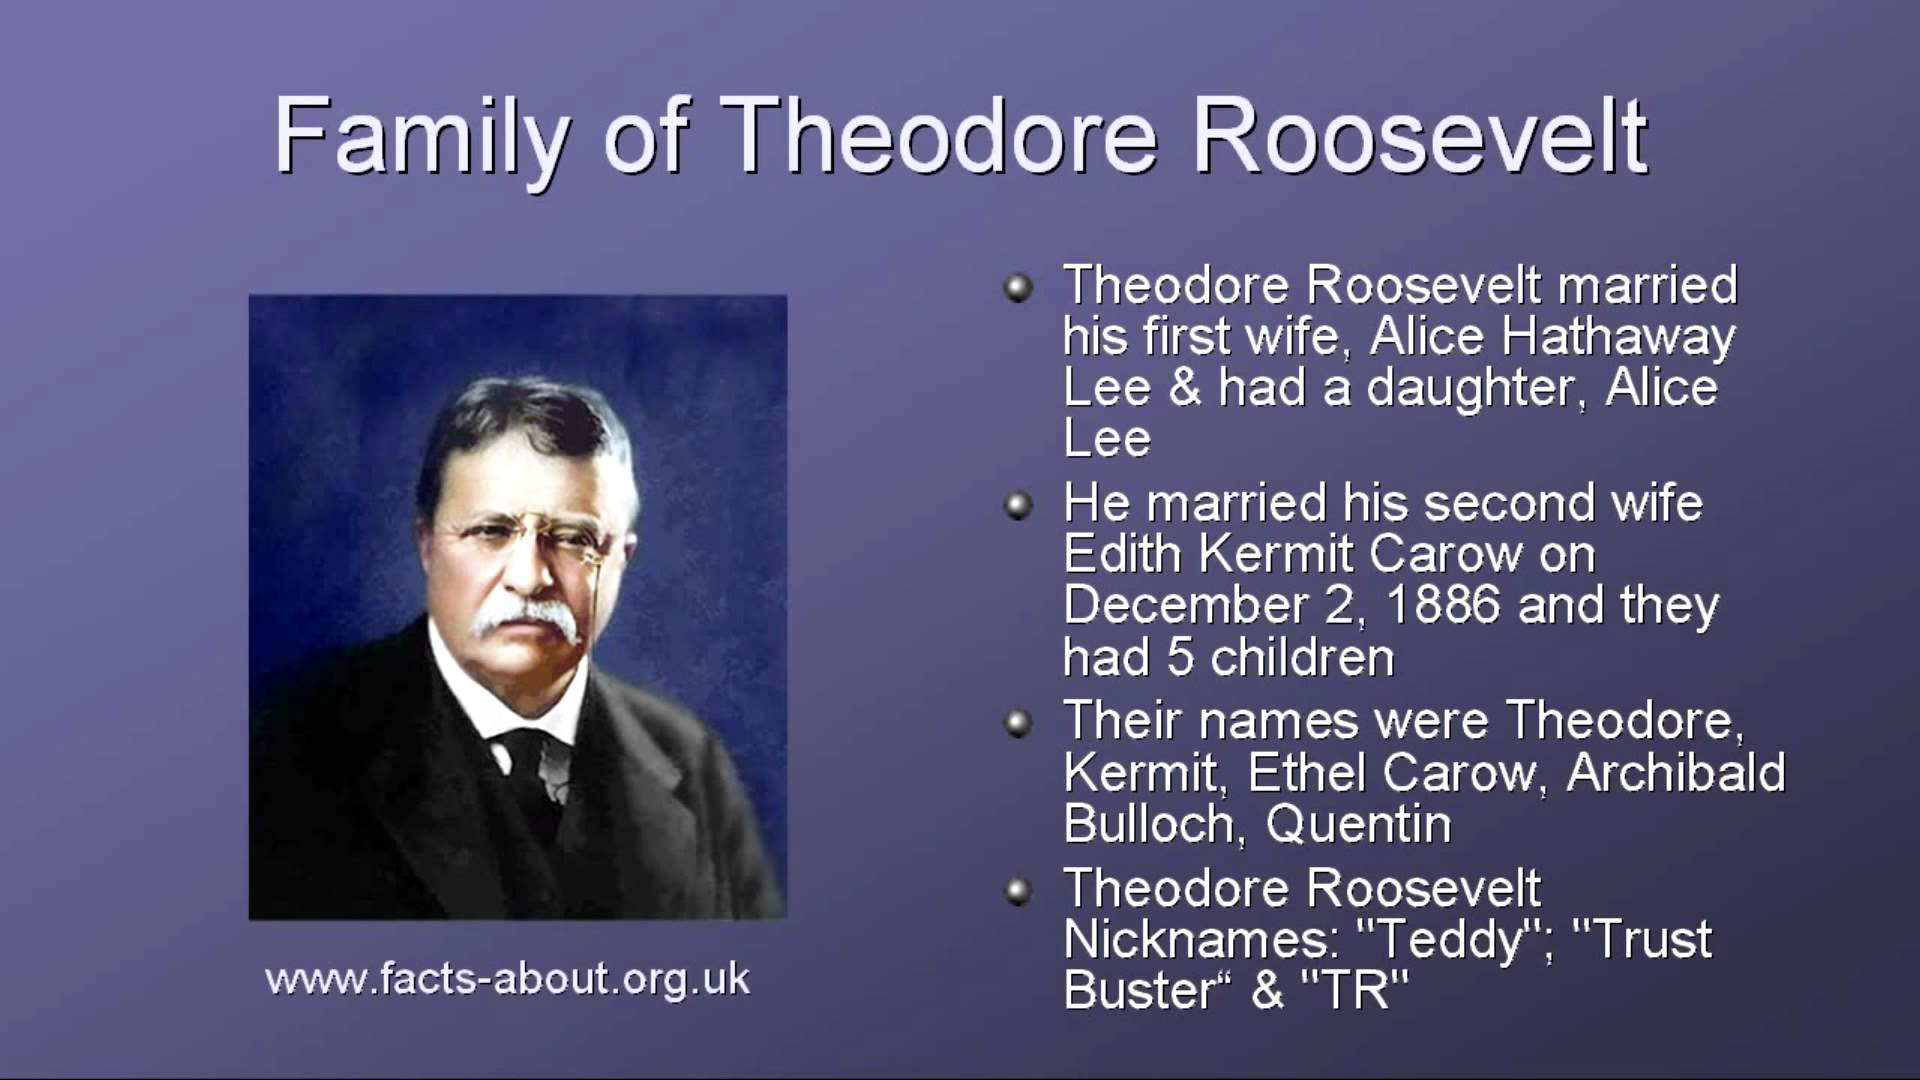 President Theodore Roosevelt Biography